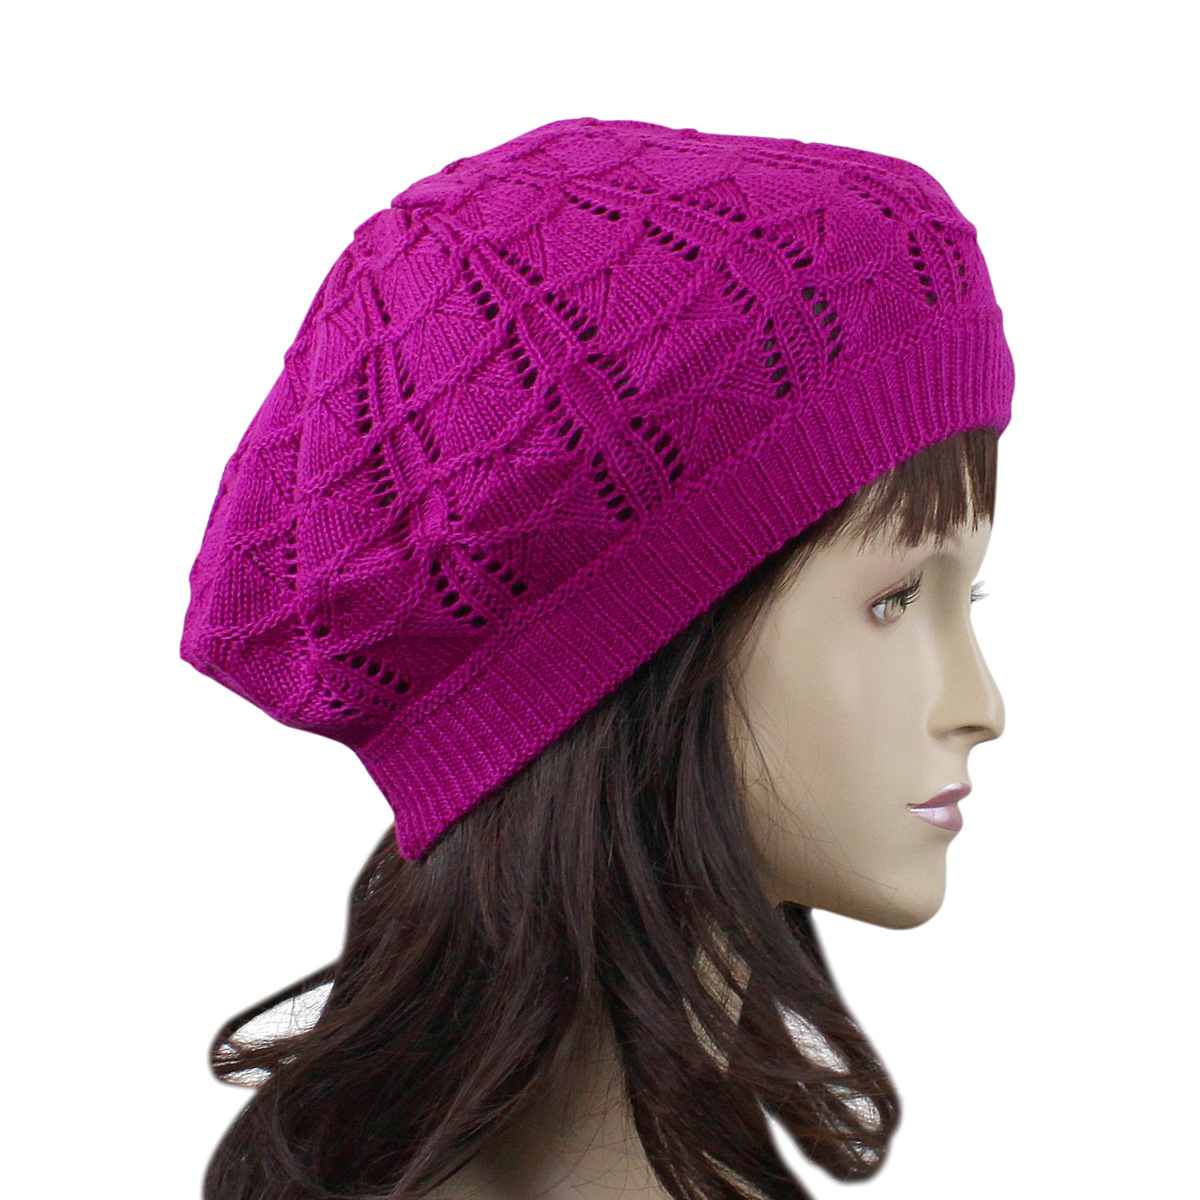 Loose Beret Knitting Pattern : Stylish French Loose Woven Beret Hat Knitted Crochet eBay